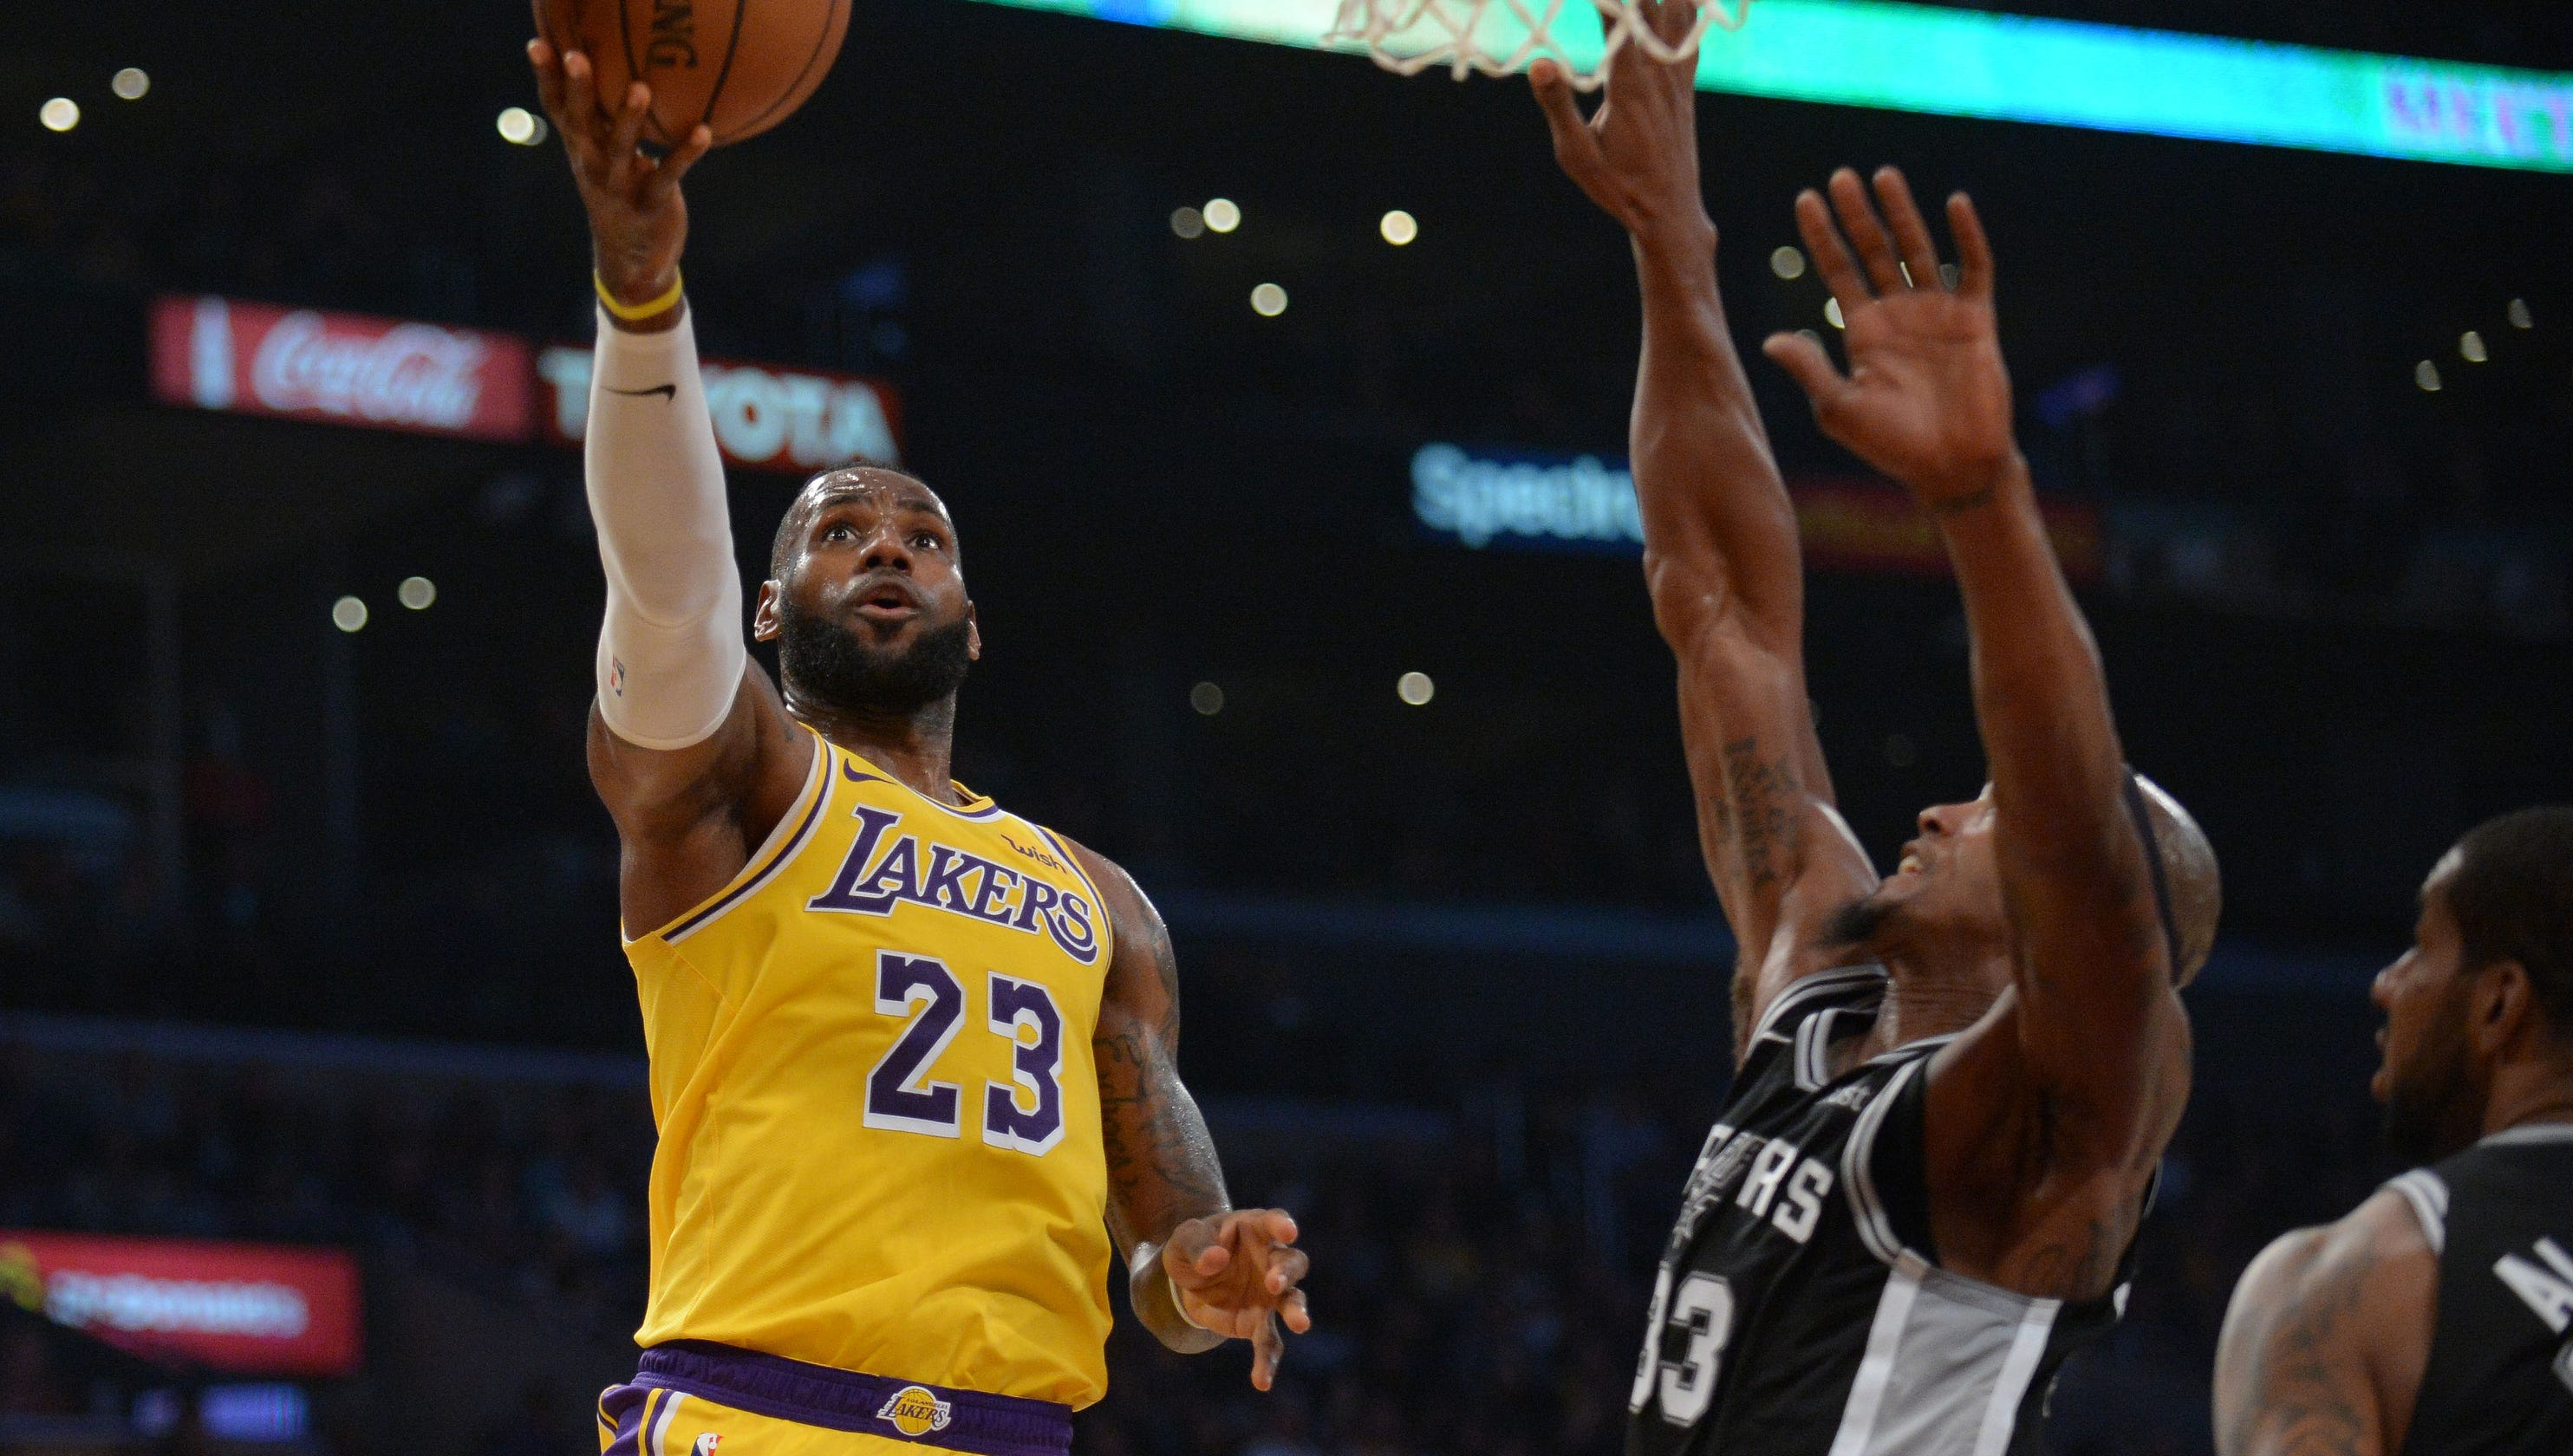 33c11a4db Lakers miss chance at first win with LeBron James